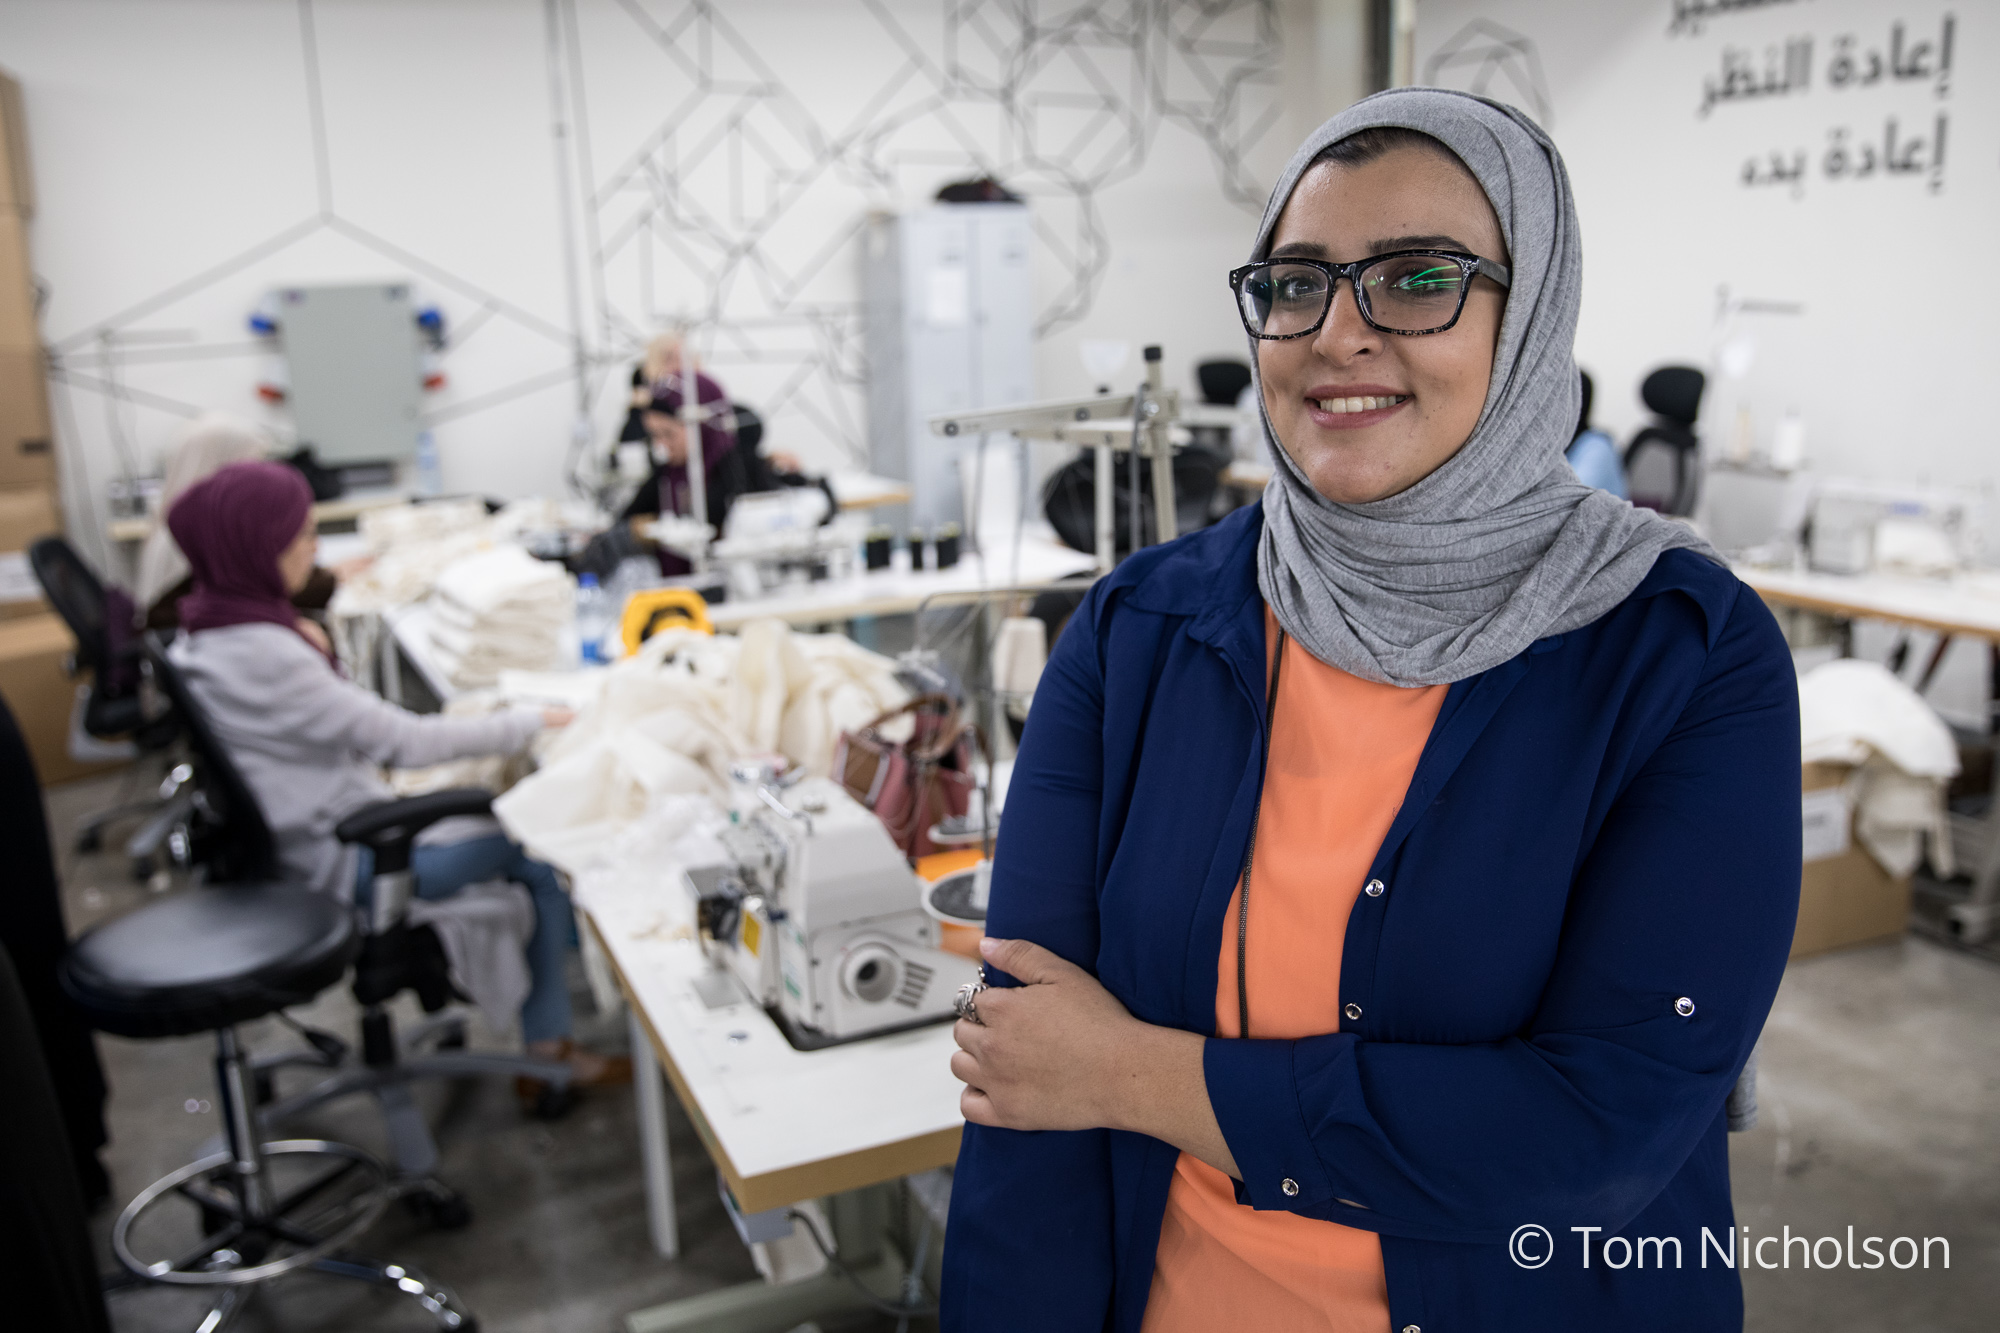 ©2018 Tom Nicholson. 23/06/2018. Irbid, Jordan. Raneem Faisal is the Co-Founder of Teenah, a social manufacturing company producing tote bags. The company provides support and work to vulnerable Syrian and Jordanian women who have often lost their husbands or the male breadwinner to the war, and therefore need an income to provide for their families. Asya lost 8 of her family members when their house was hit by a bomb during the war in Syria. Now thanks to Teenah, she has been able to afford to give her children a good education.